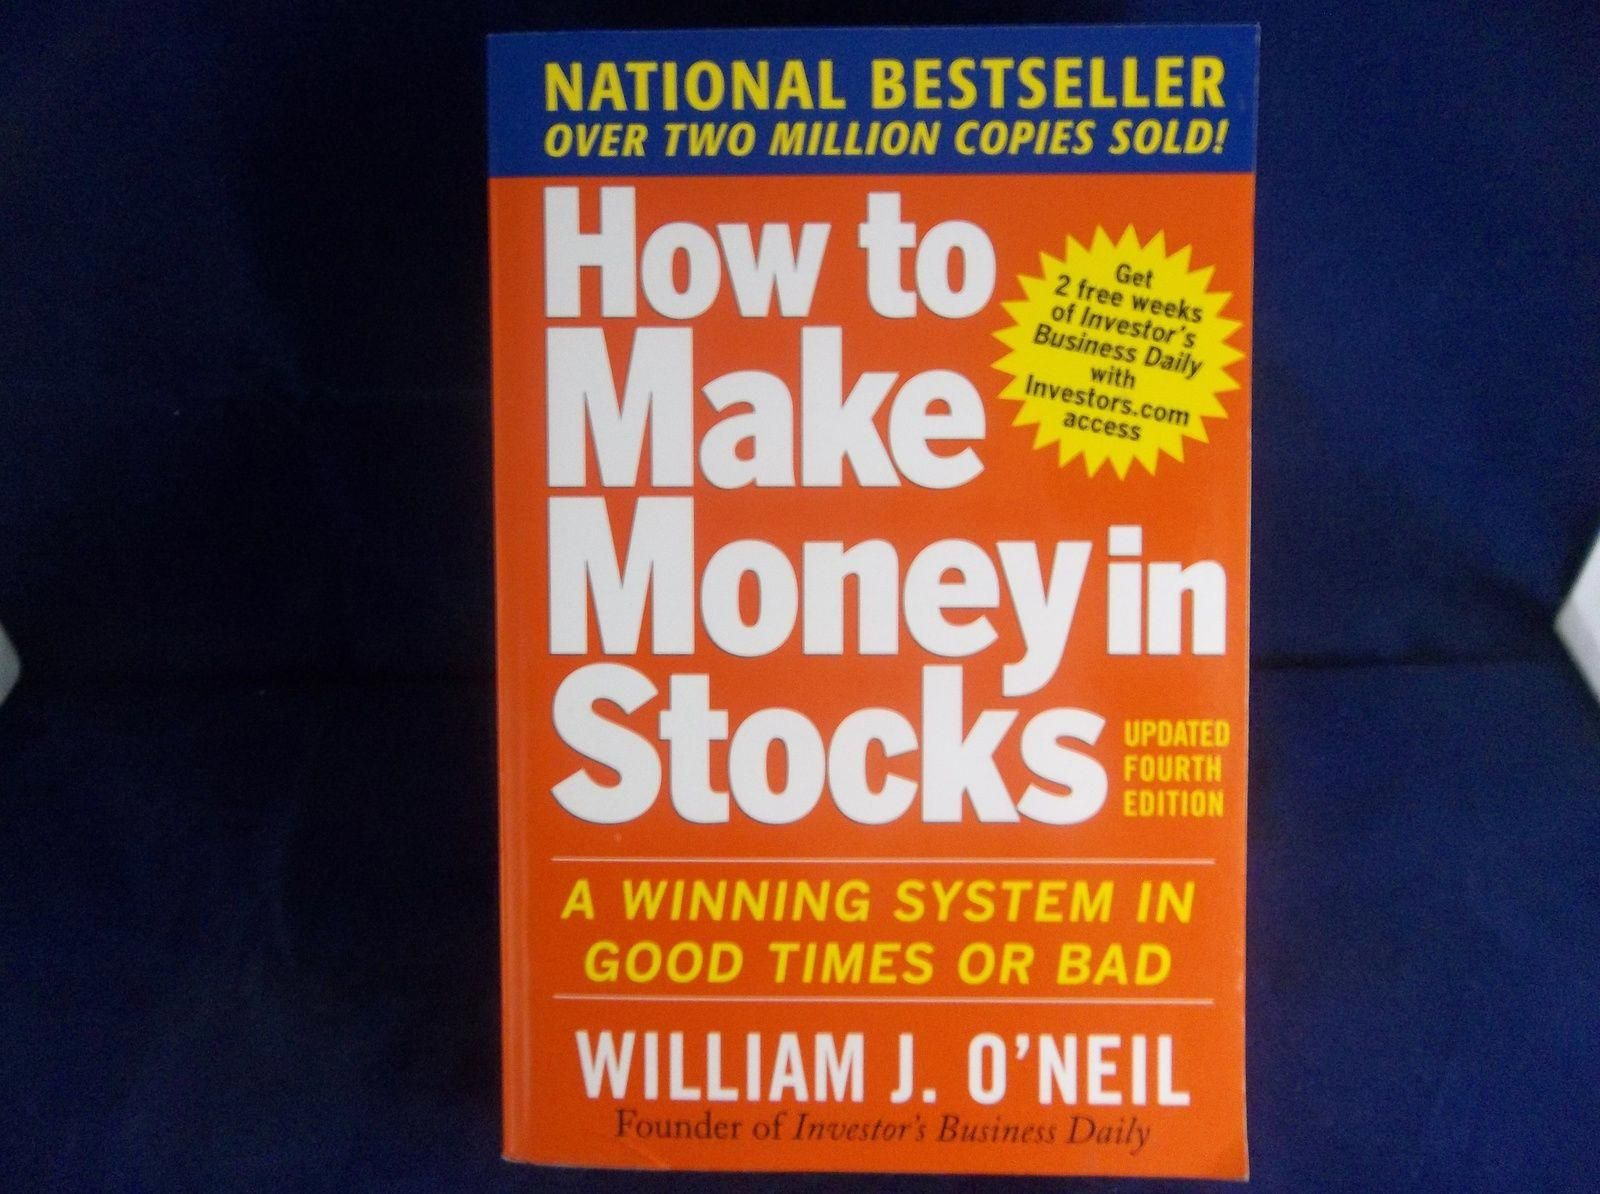 How To Make Money In Stocks William J O'Neil Updated 4th Edition ...